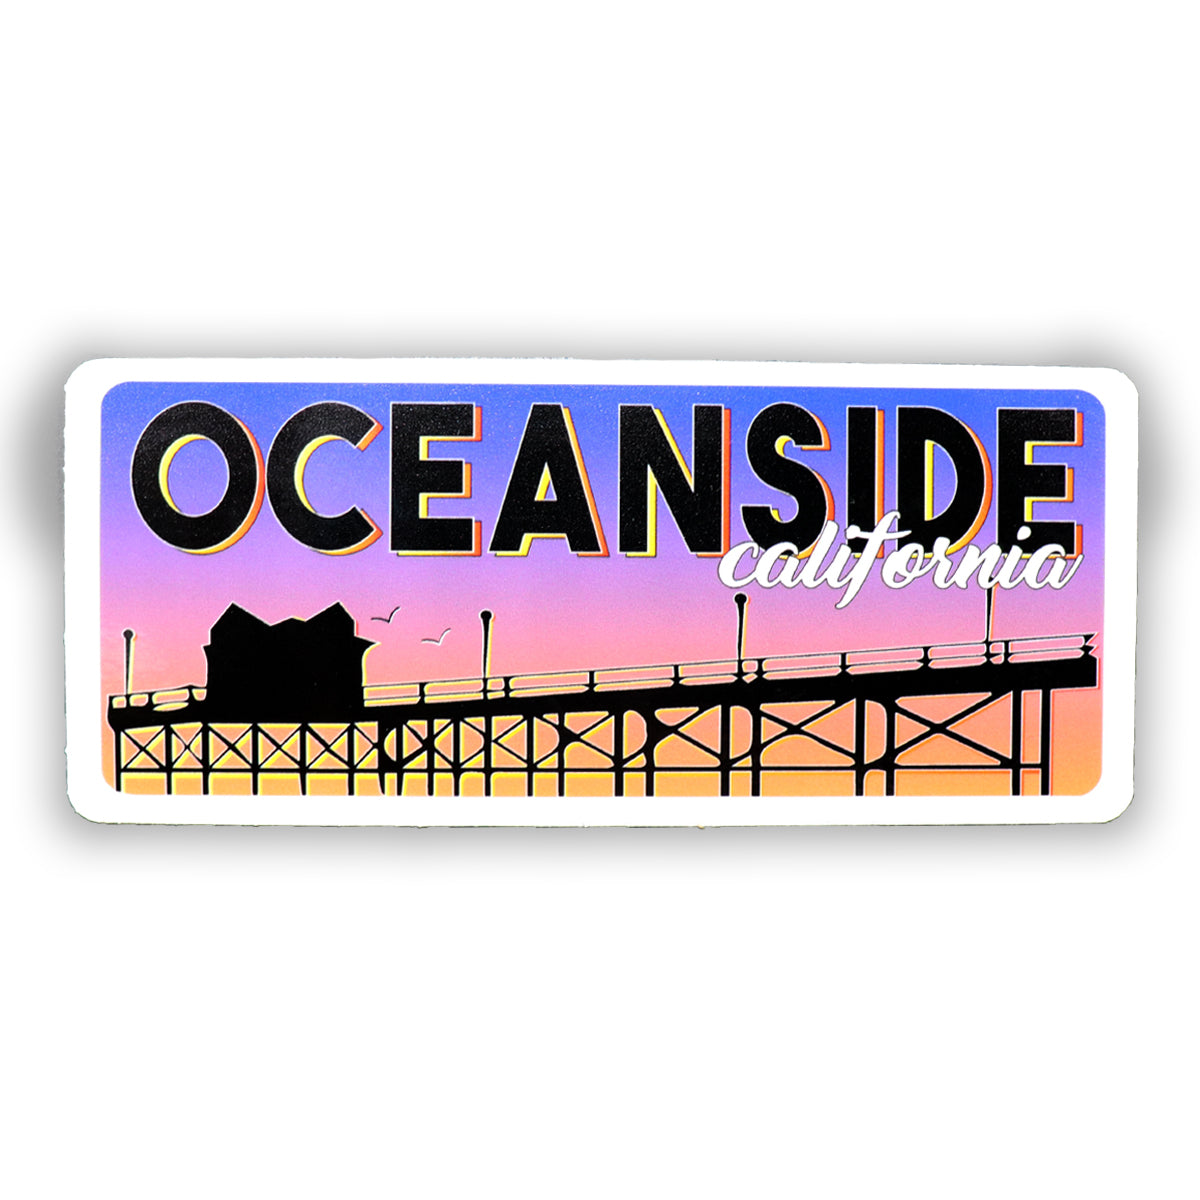 Oceanside sticker of pier with sunset background and Oceanside, California wording. Oceanside is in black capital block letters. California is in cursive in white font. Sold from SDTrading Co.